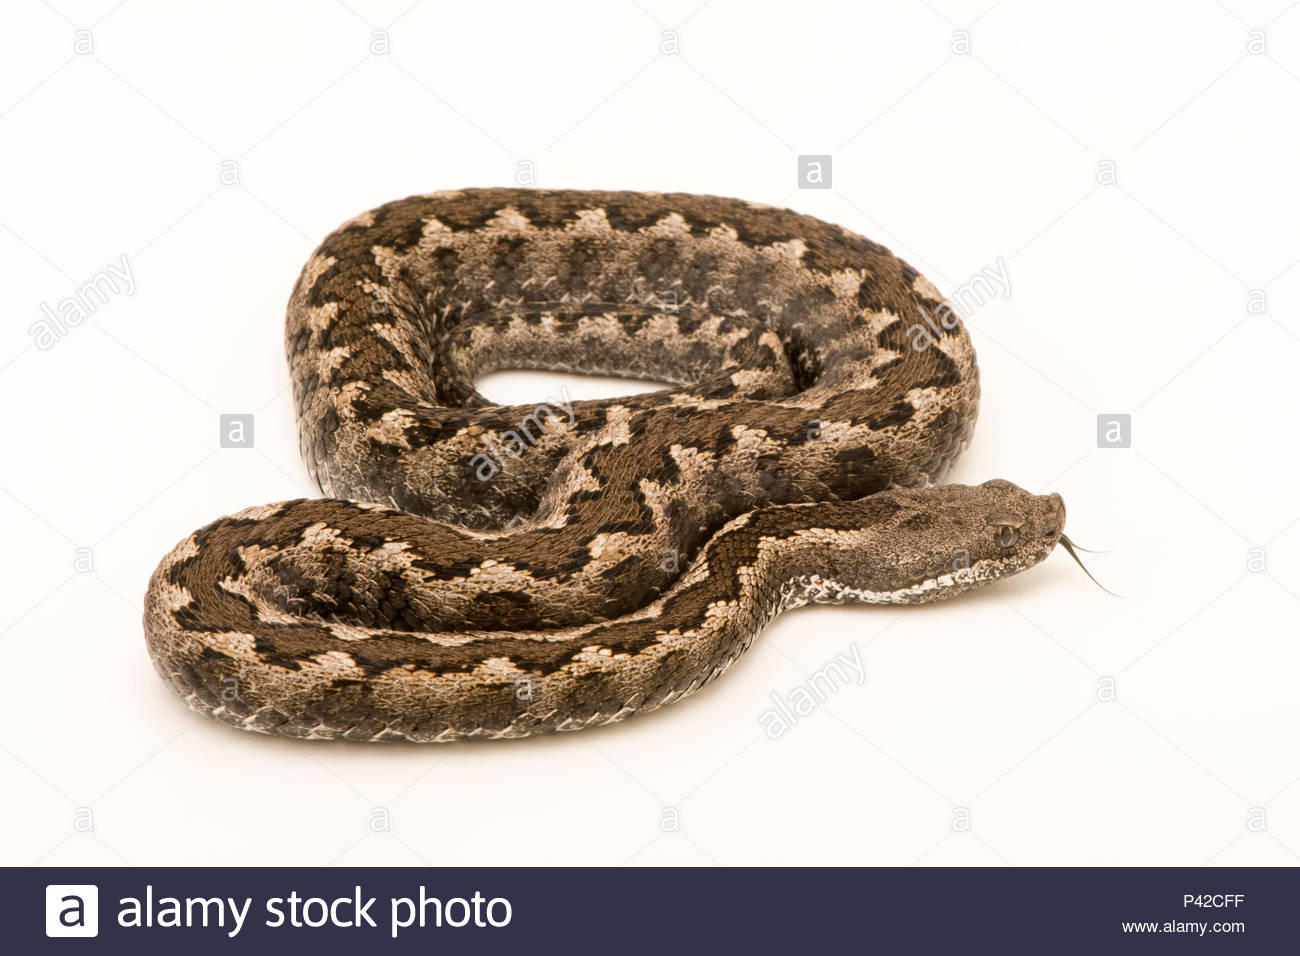 Iberian or Lataste's viper, Vipera latastei latastei, at University of Porto Center for Biodiversity and Genetic Resources. - Stock Image